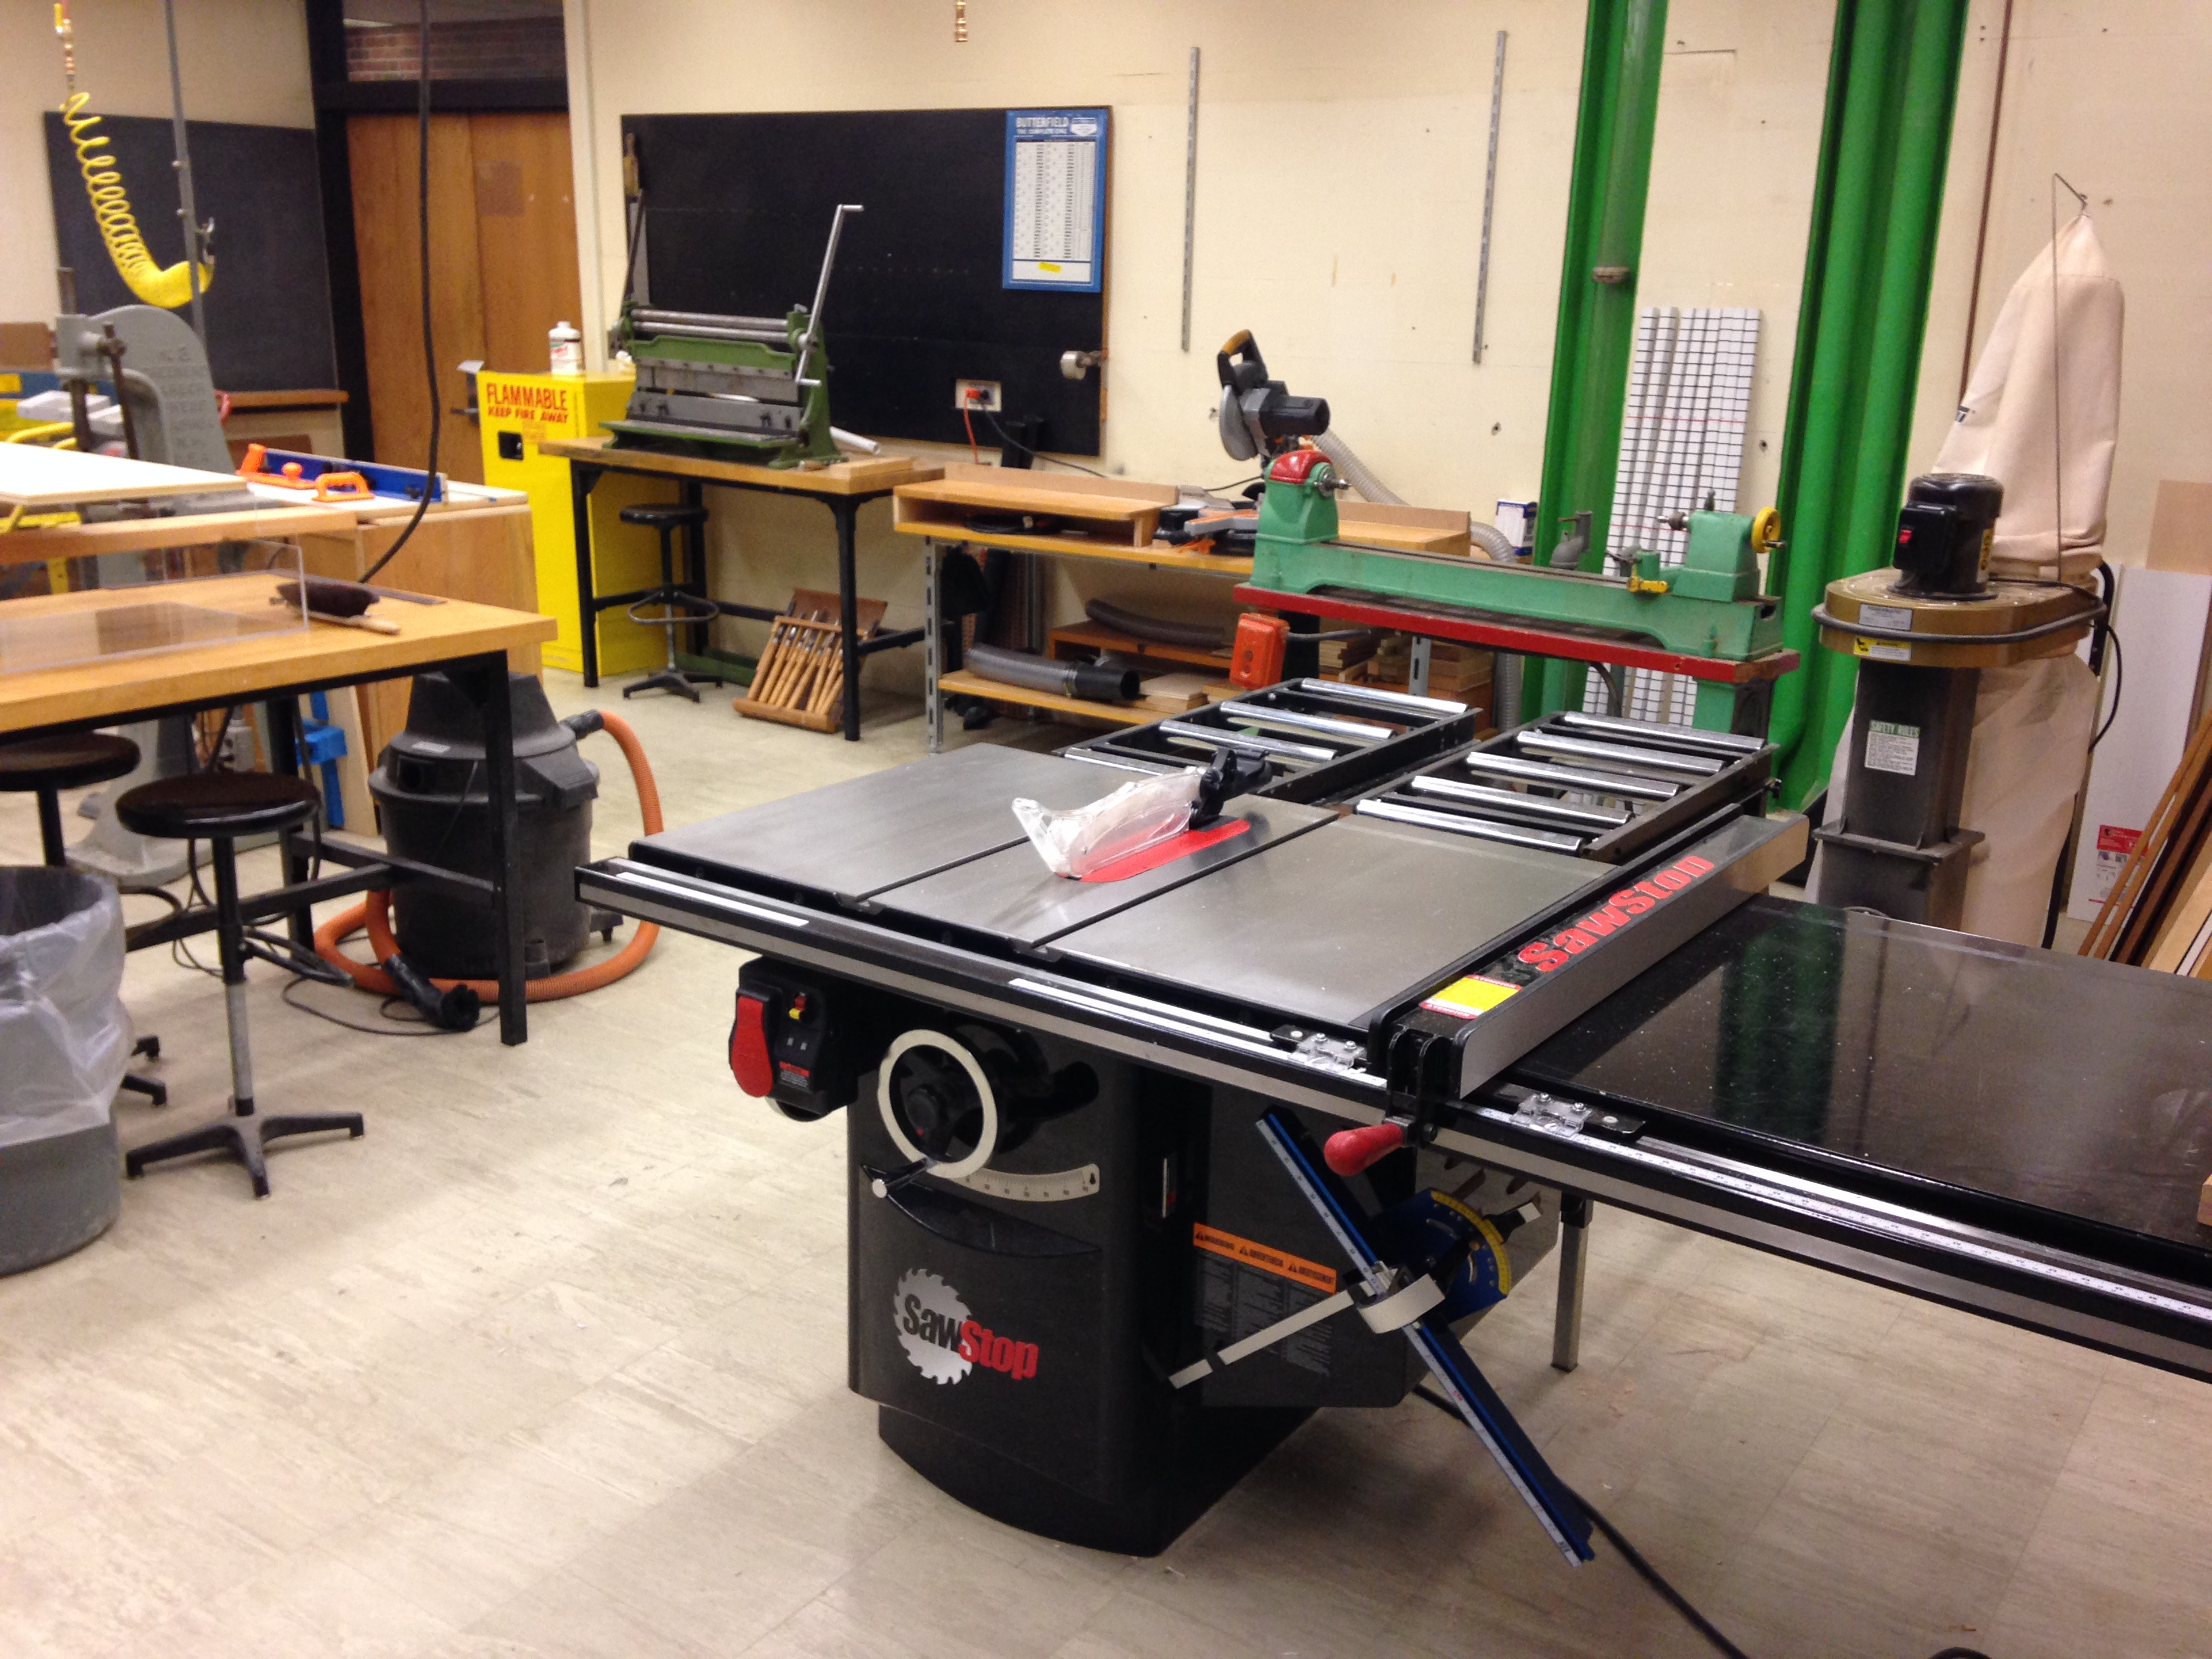 A SawStop tablesaw, drill press, band saw, chop saw and wood lathe are available for woodworking projects.